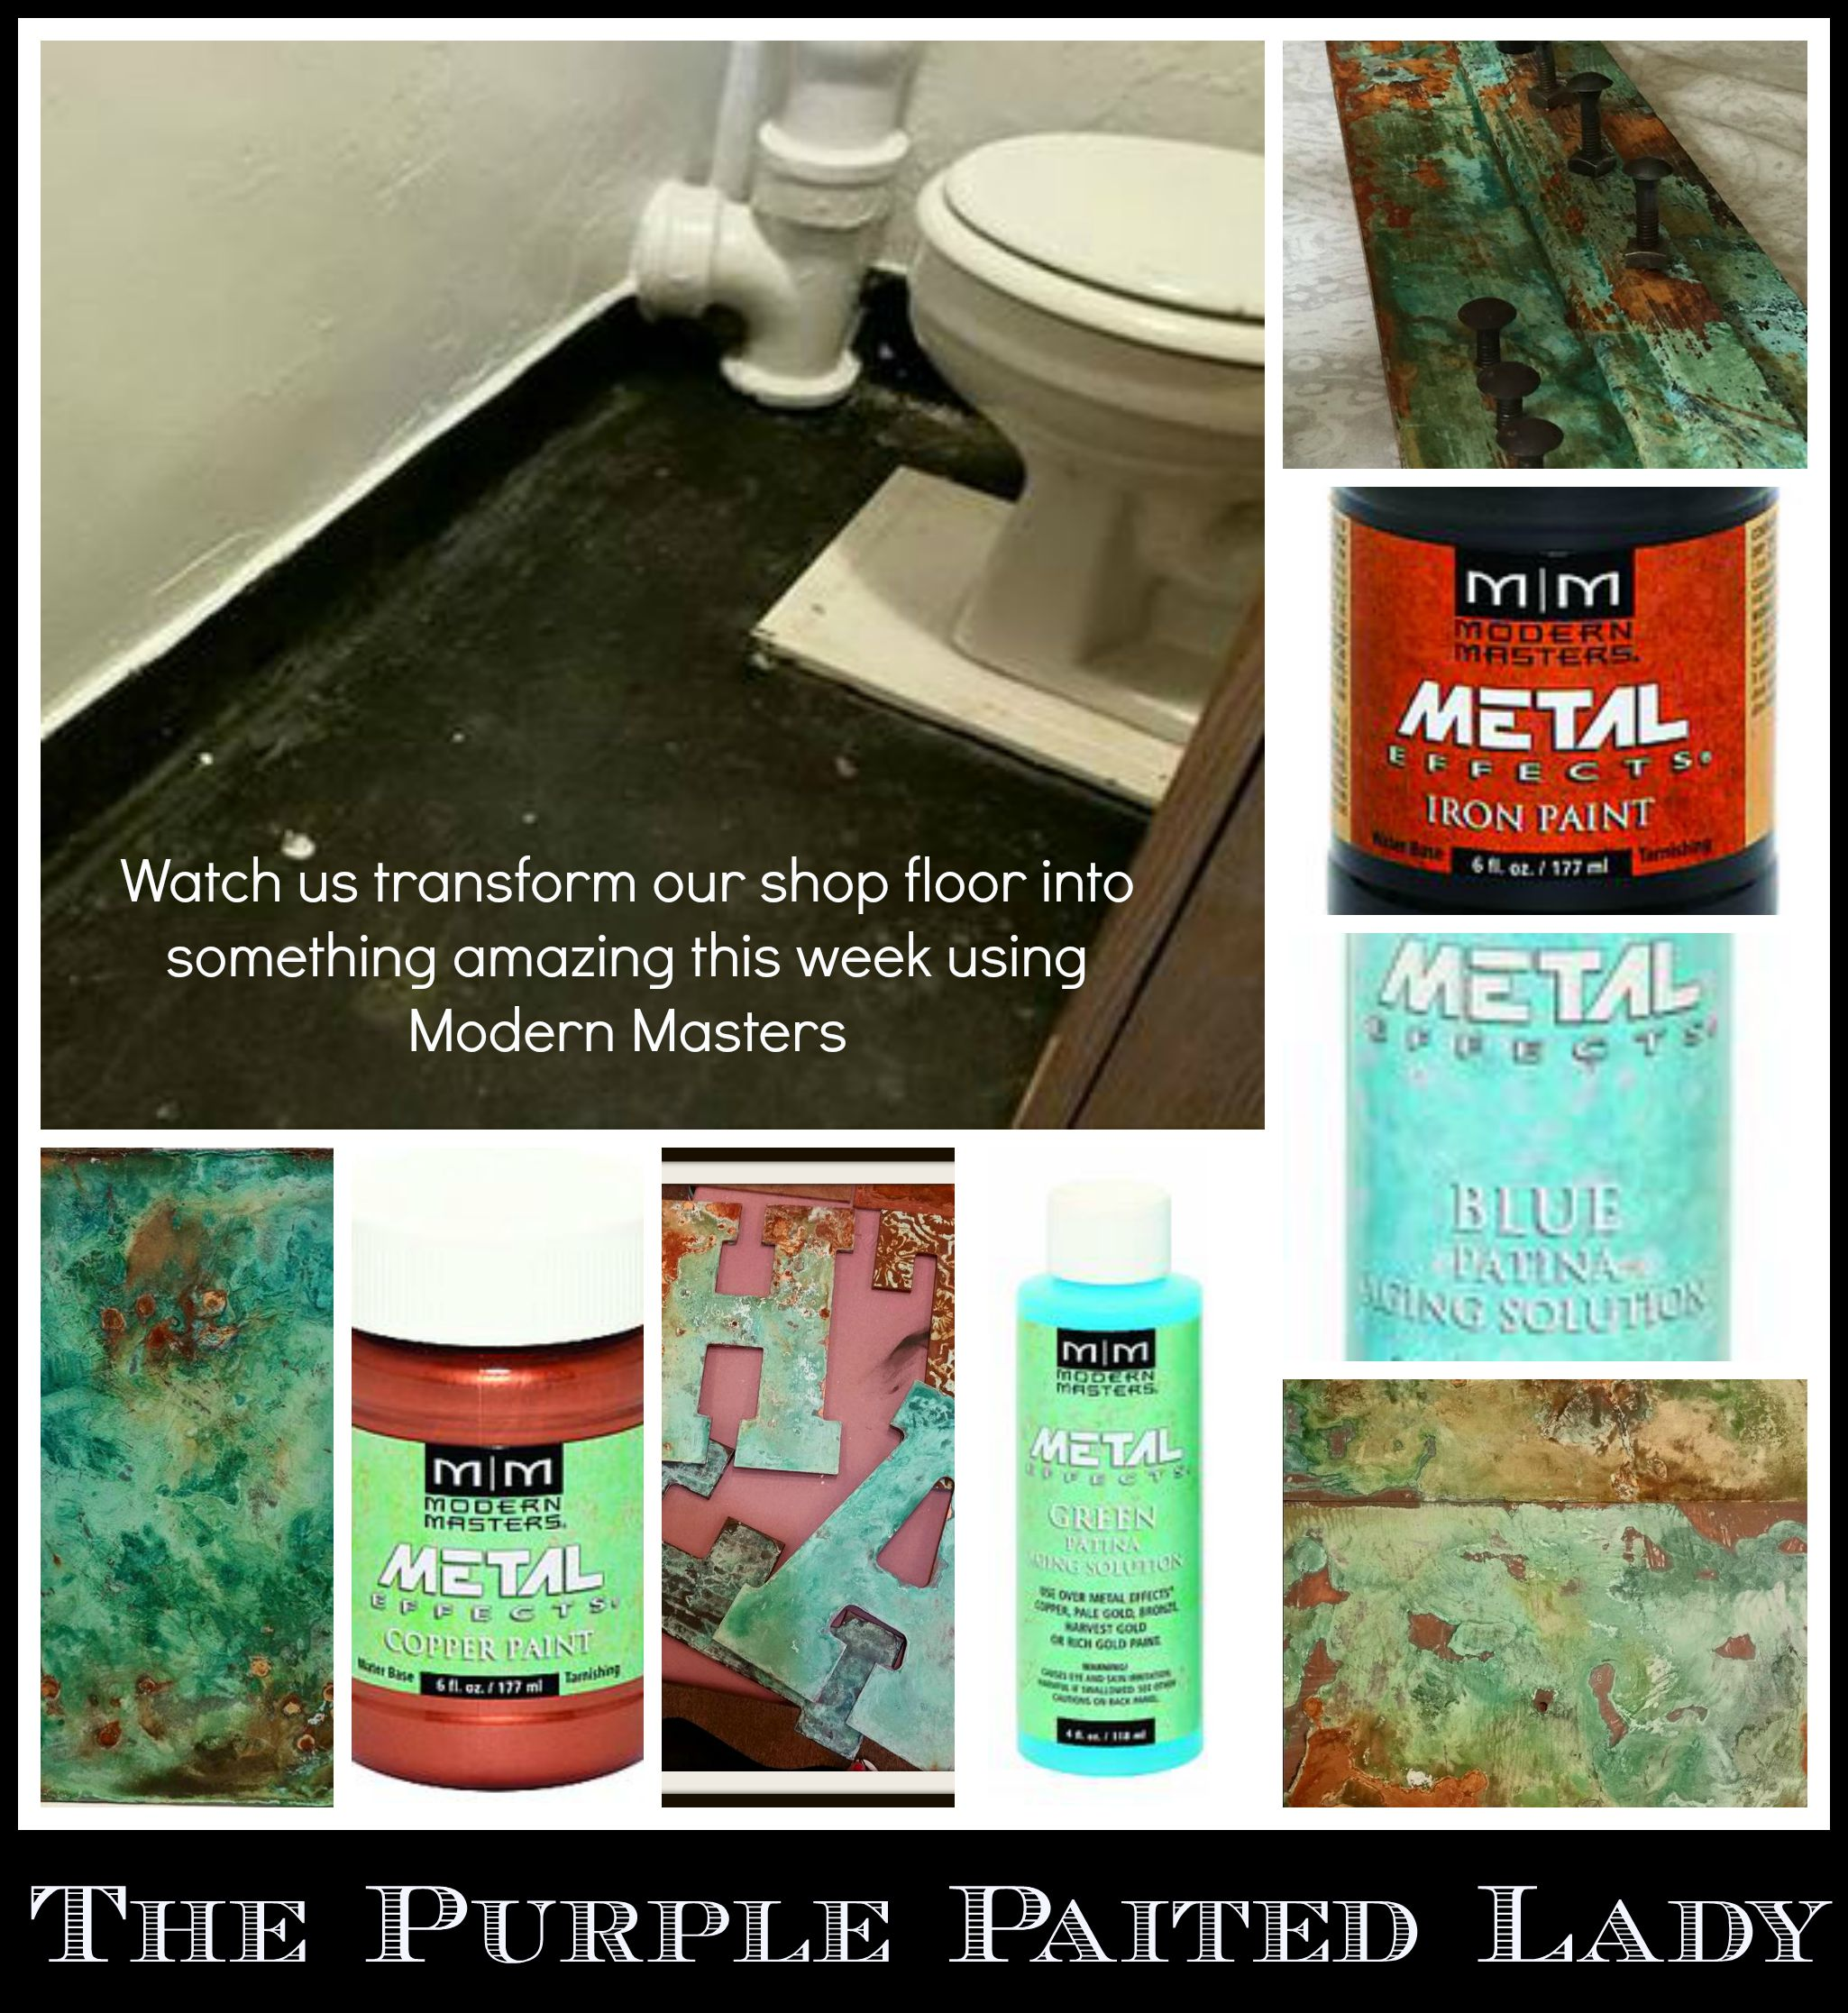 The Purple Painted Lady Bathroom floor South wedge Modern Masters collage